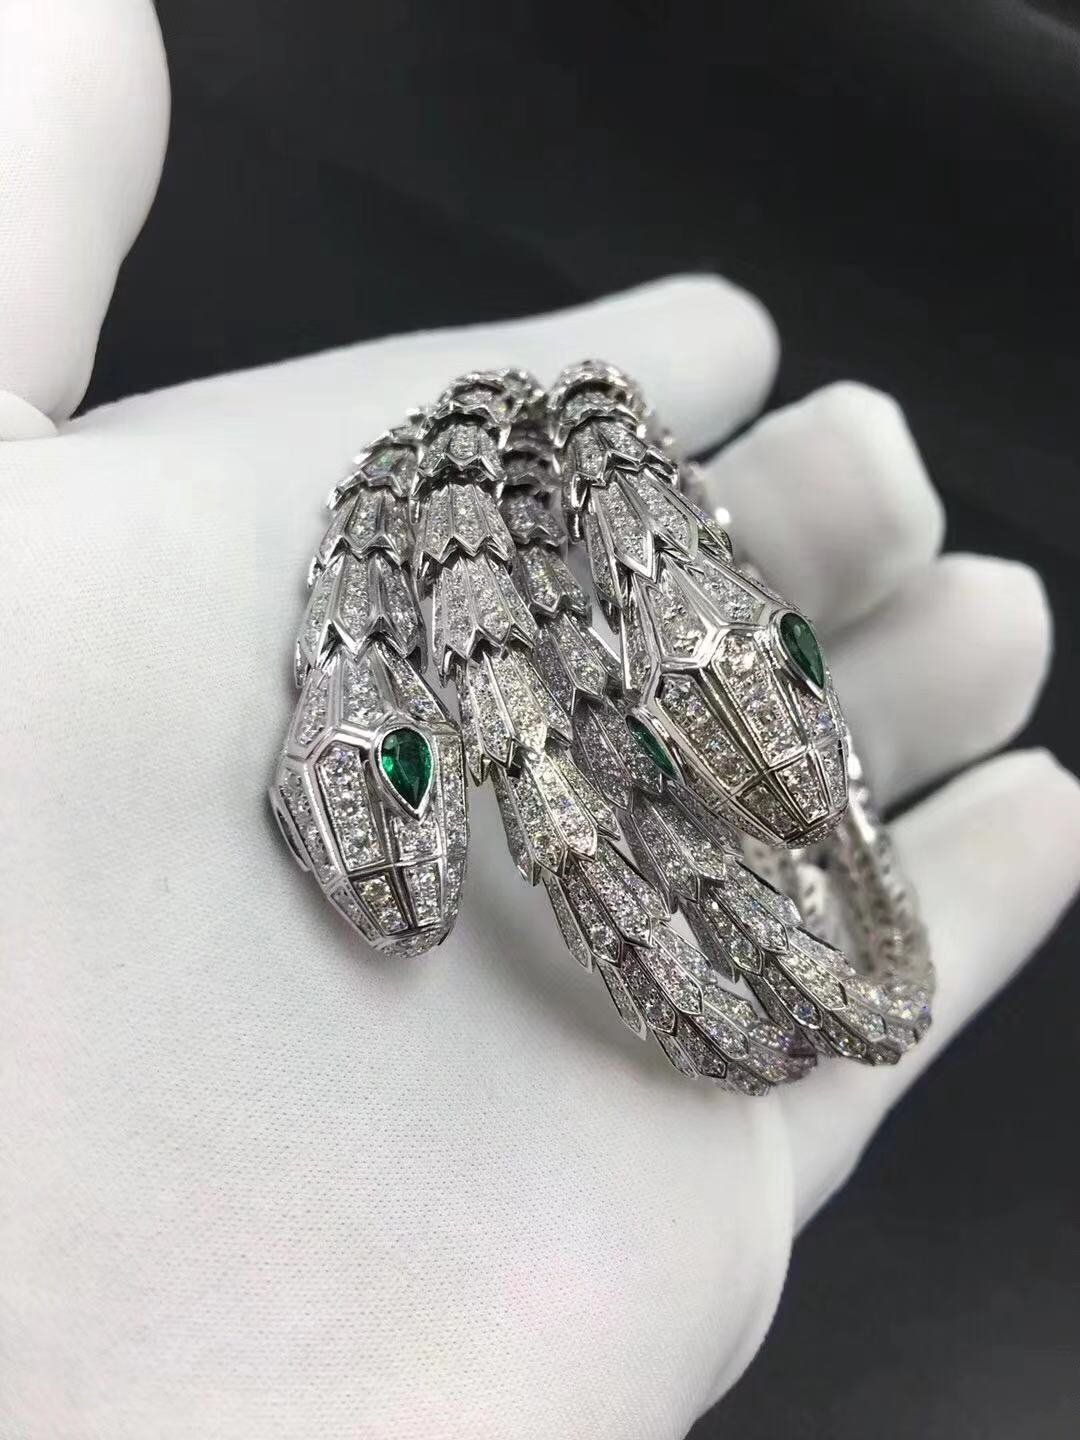 Bvlgari Serpenti 18kt white gold bracelet set with pavé diamonds and two emerald eyes